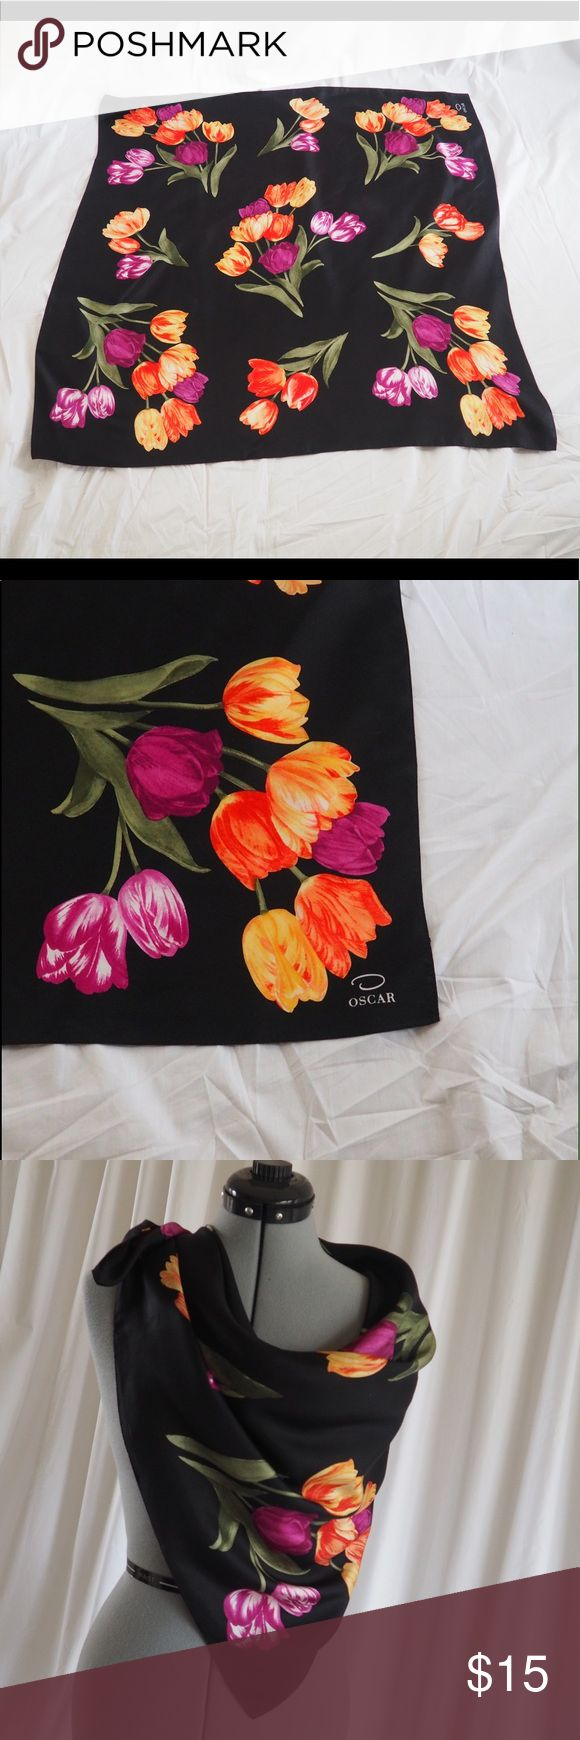 Oscar Tulip Scarf You can enjoy this large colorful scarf in many ways - head scarf, festival triangle top, traditional neck scarf, belt, or a triangle topper over your skirt.  On-trend dark floral. No tags. Oscar de la Renta Accessories Scarves & Wraps